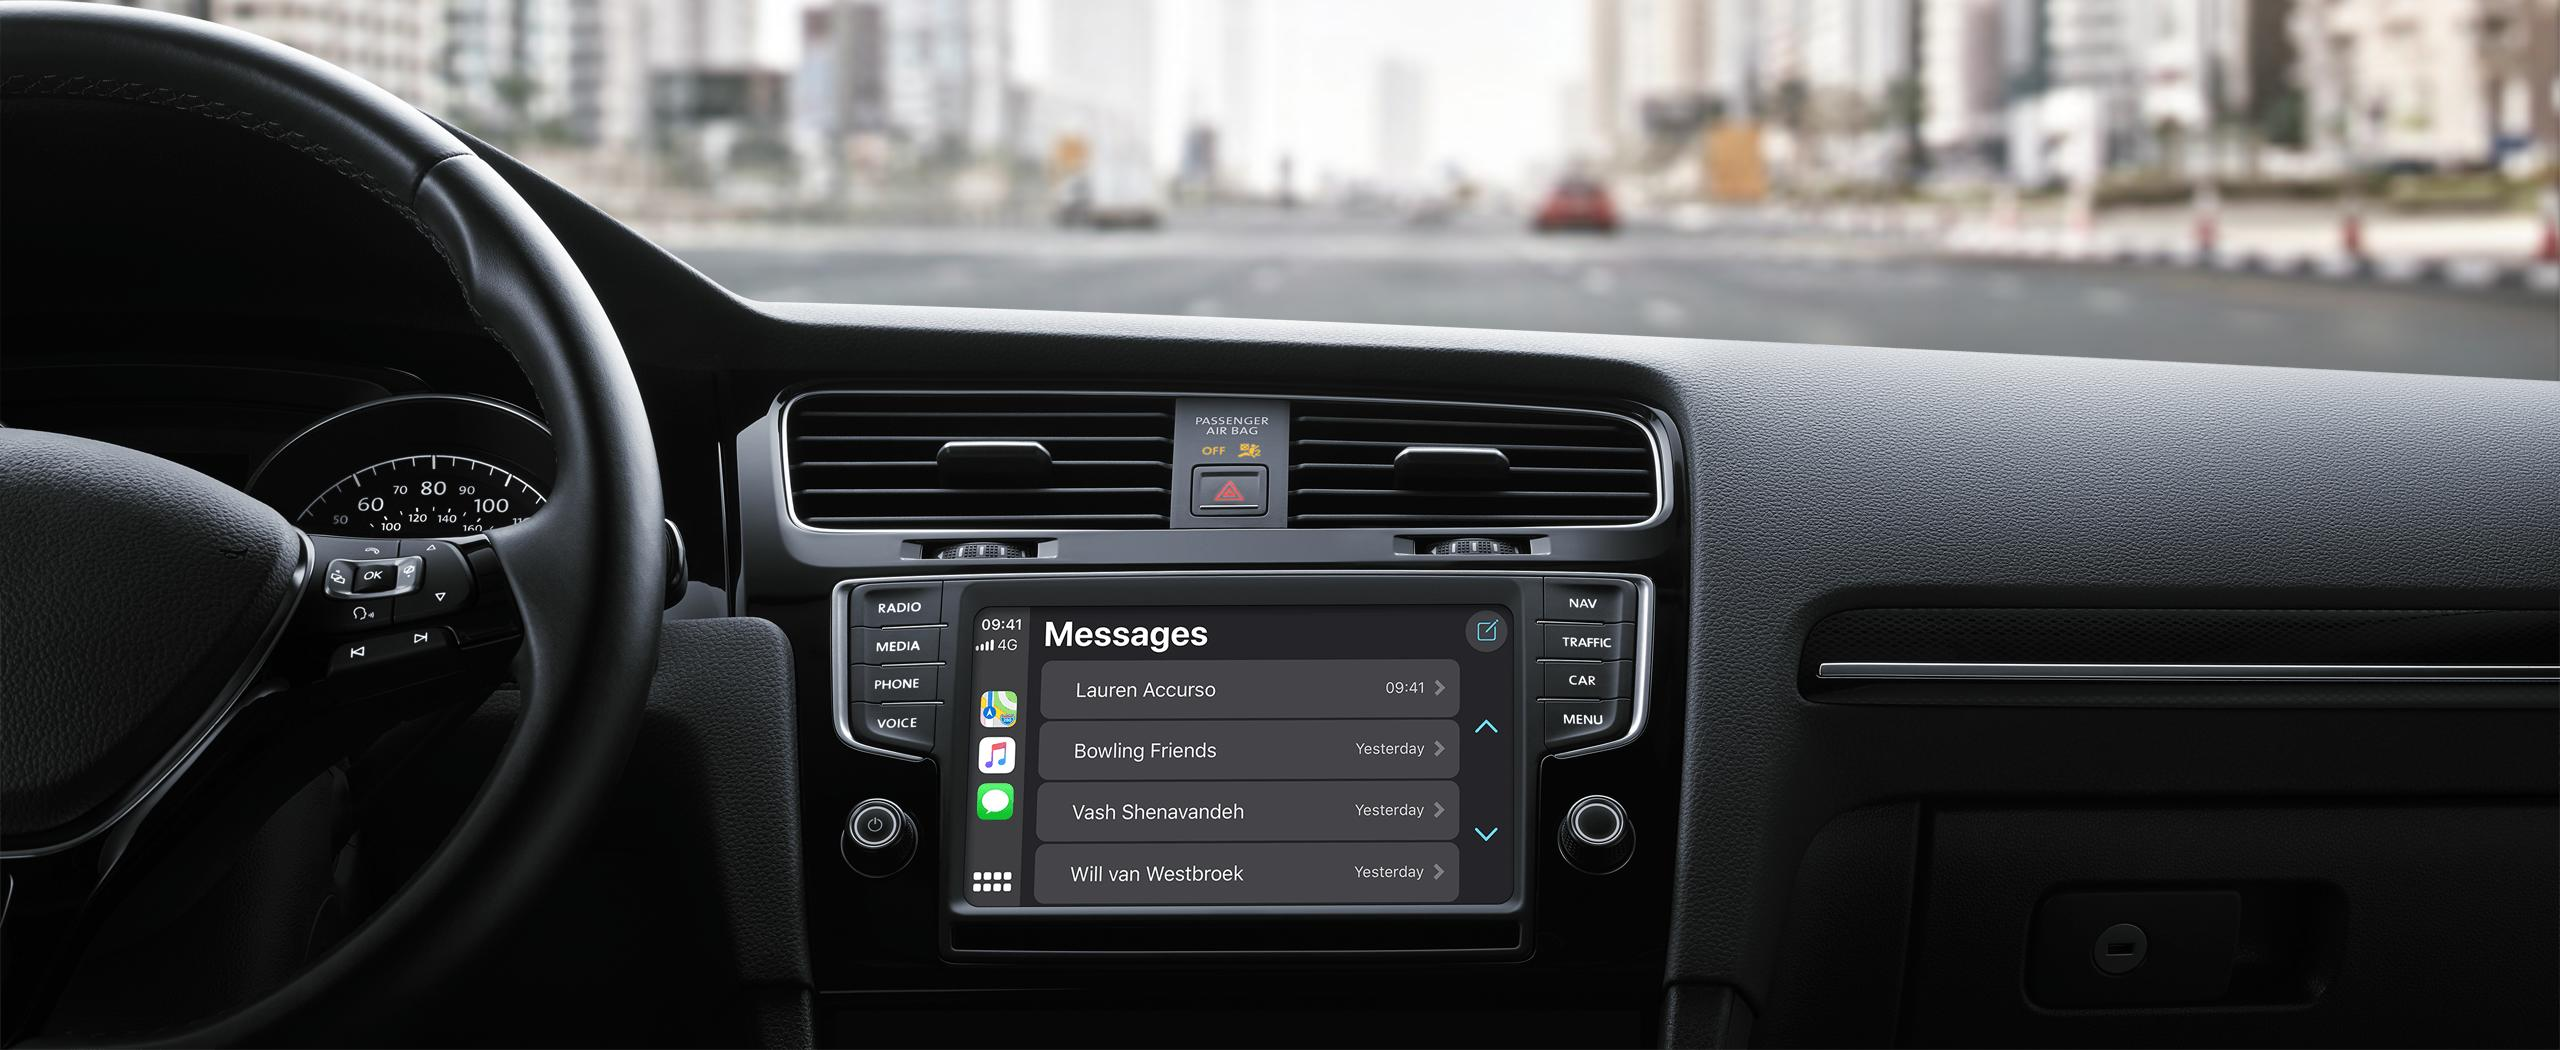 apple CarPlay upgrades for audi and bmw